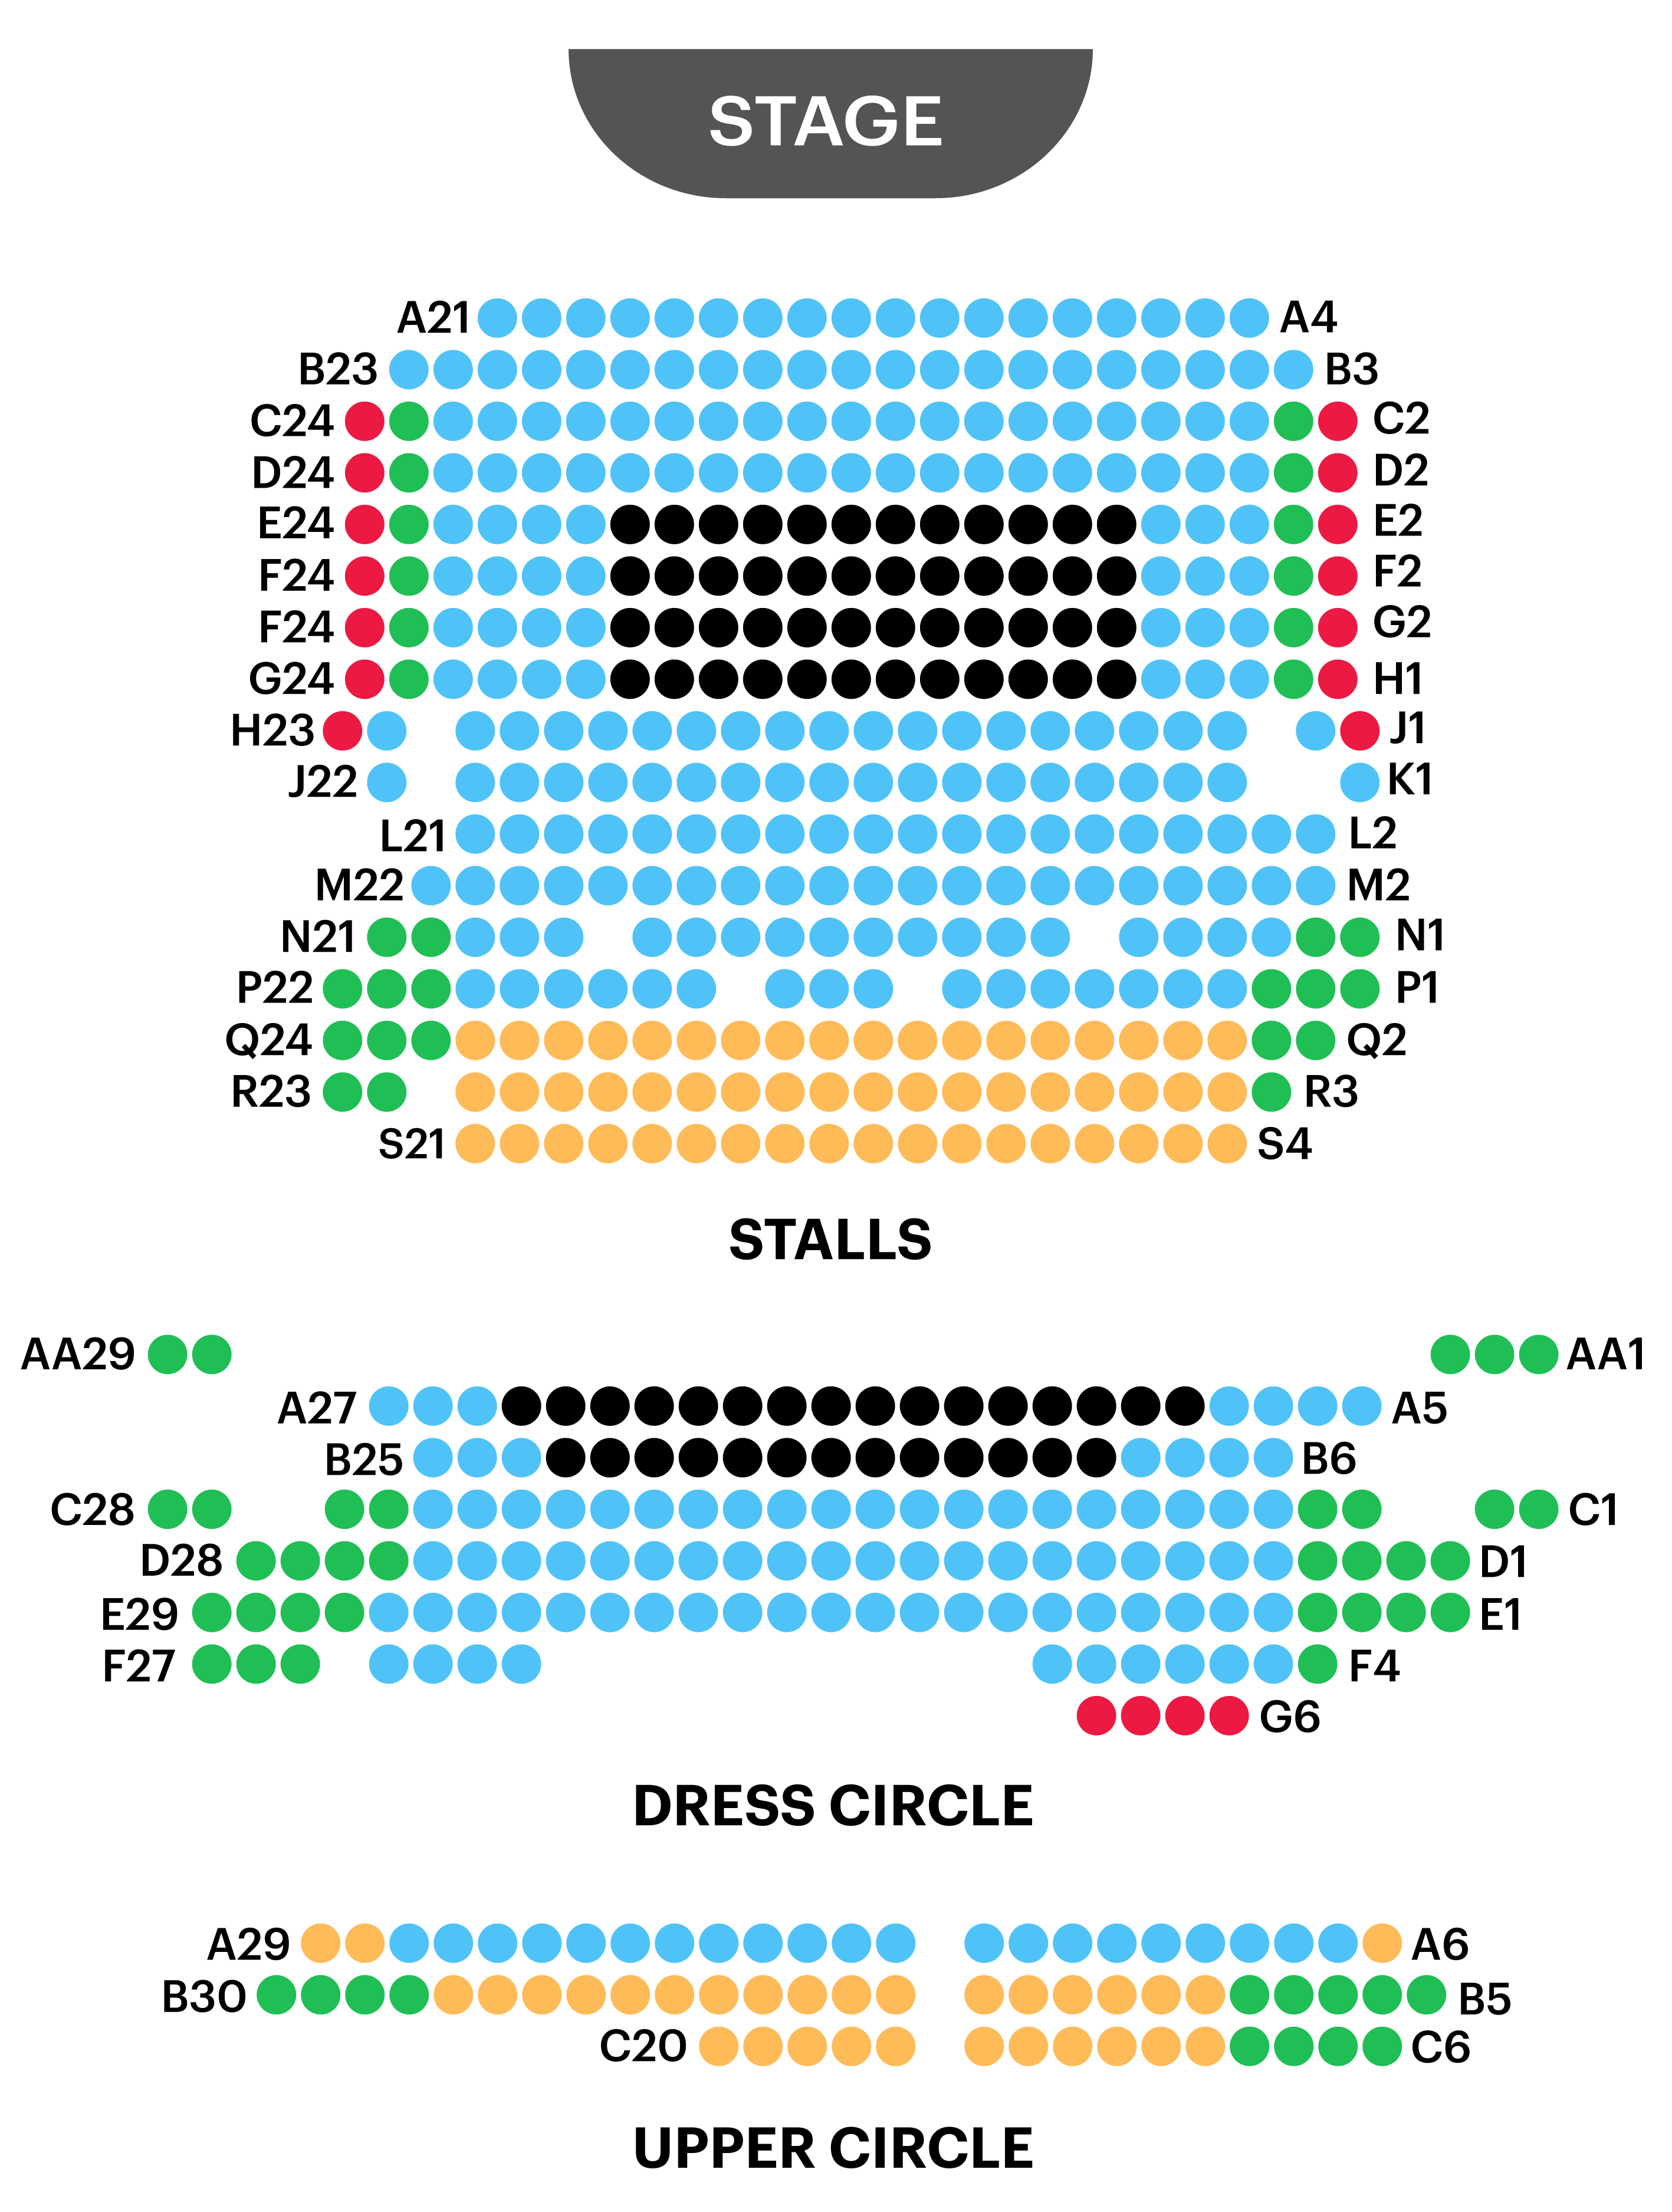 Criterion Theatre Seating Map